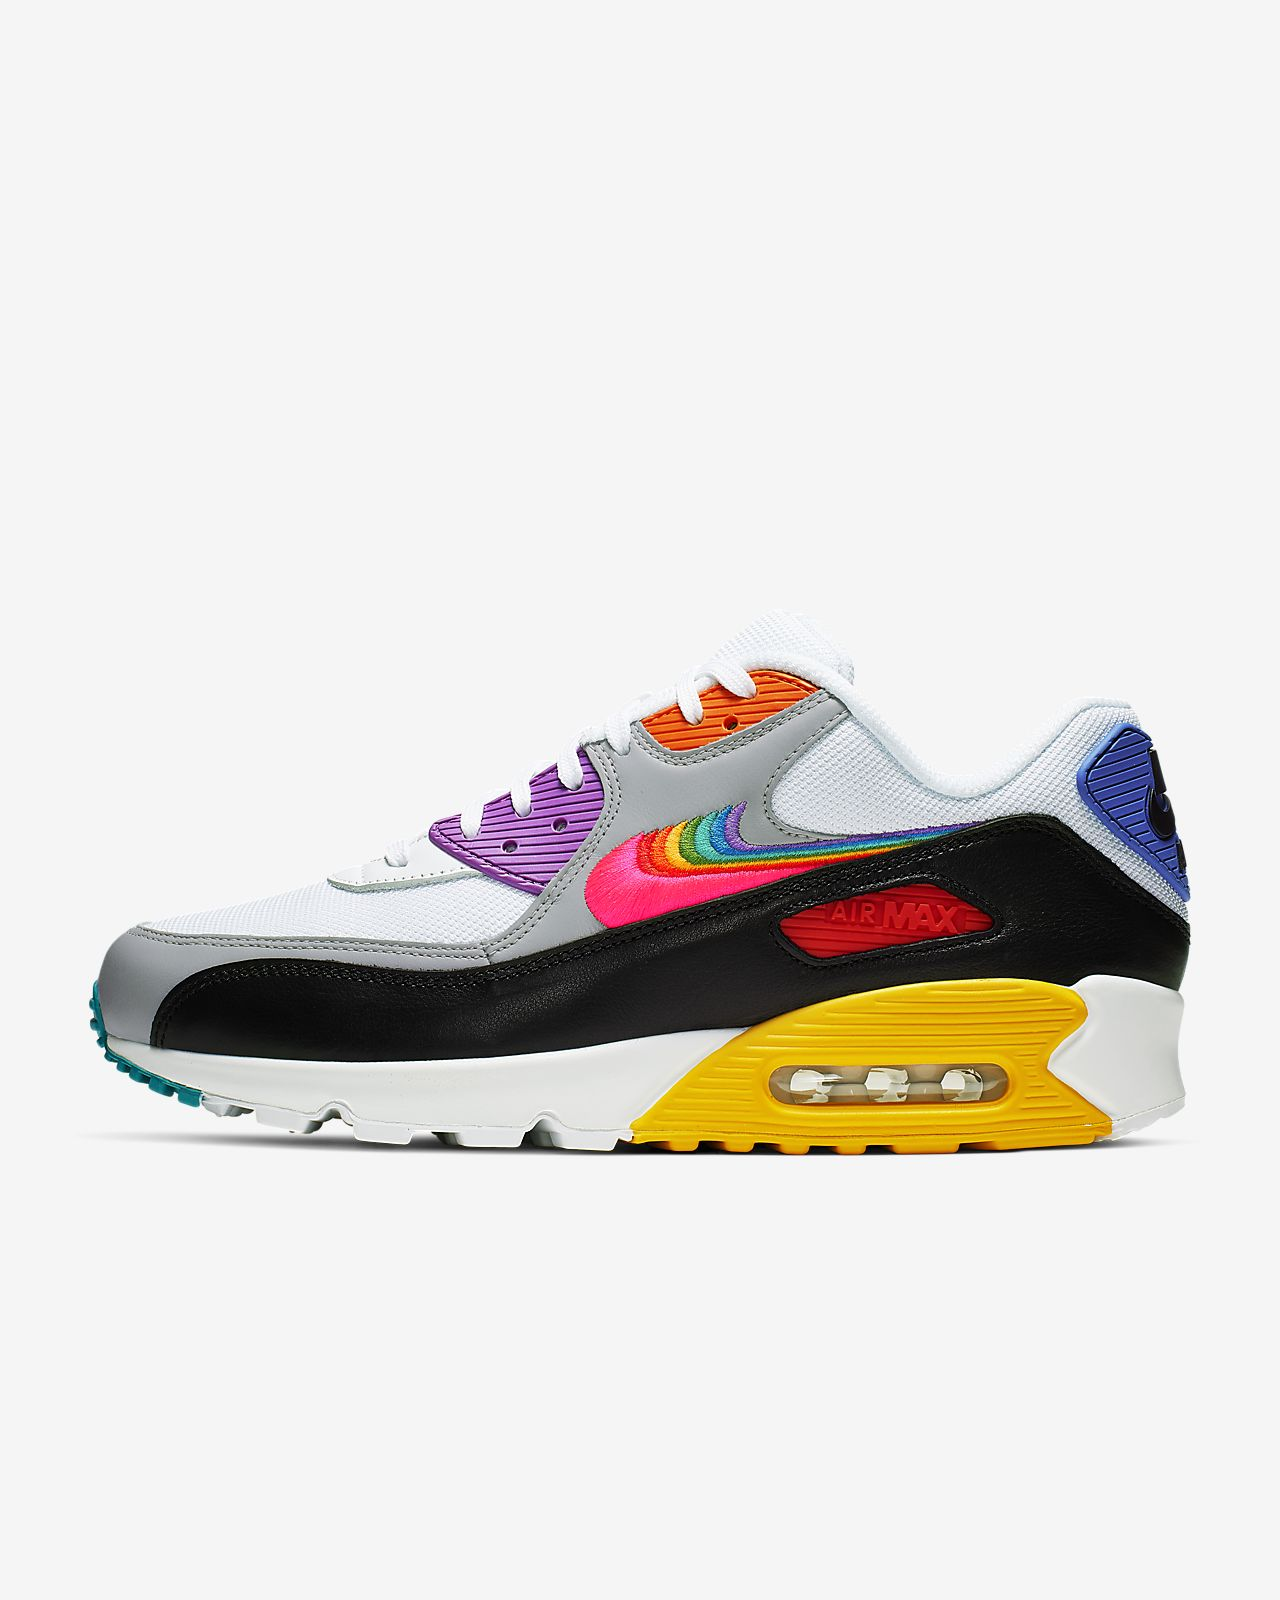 Nike Air Max 90 BETRUE Shoe